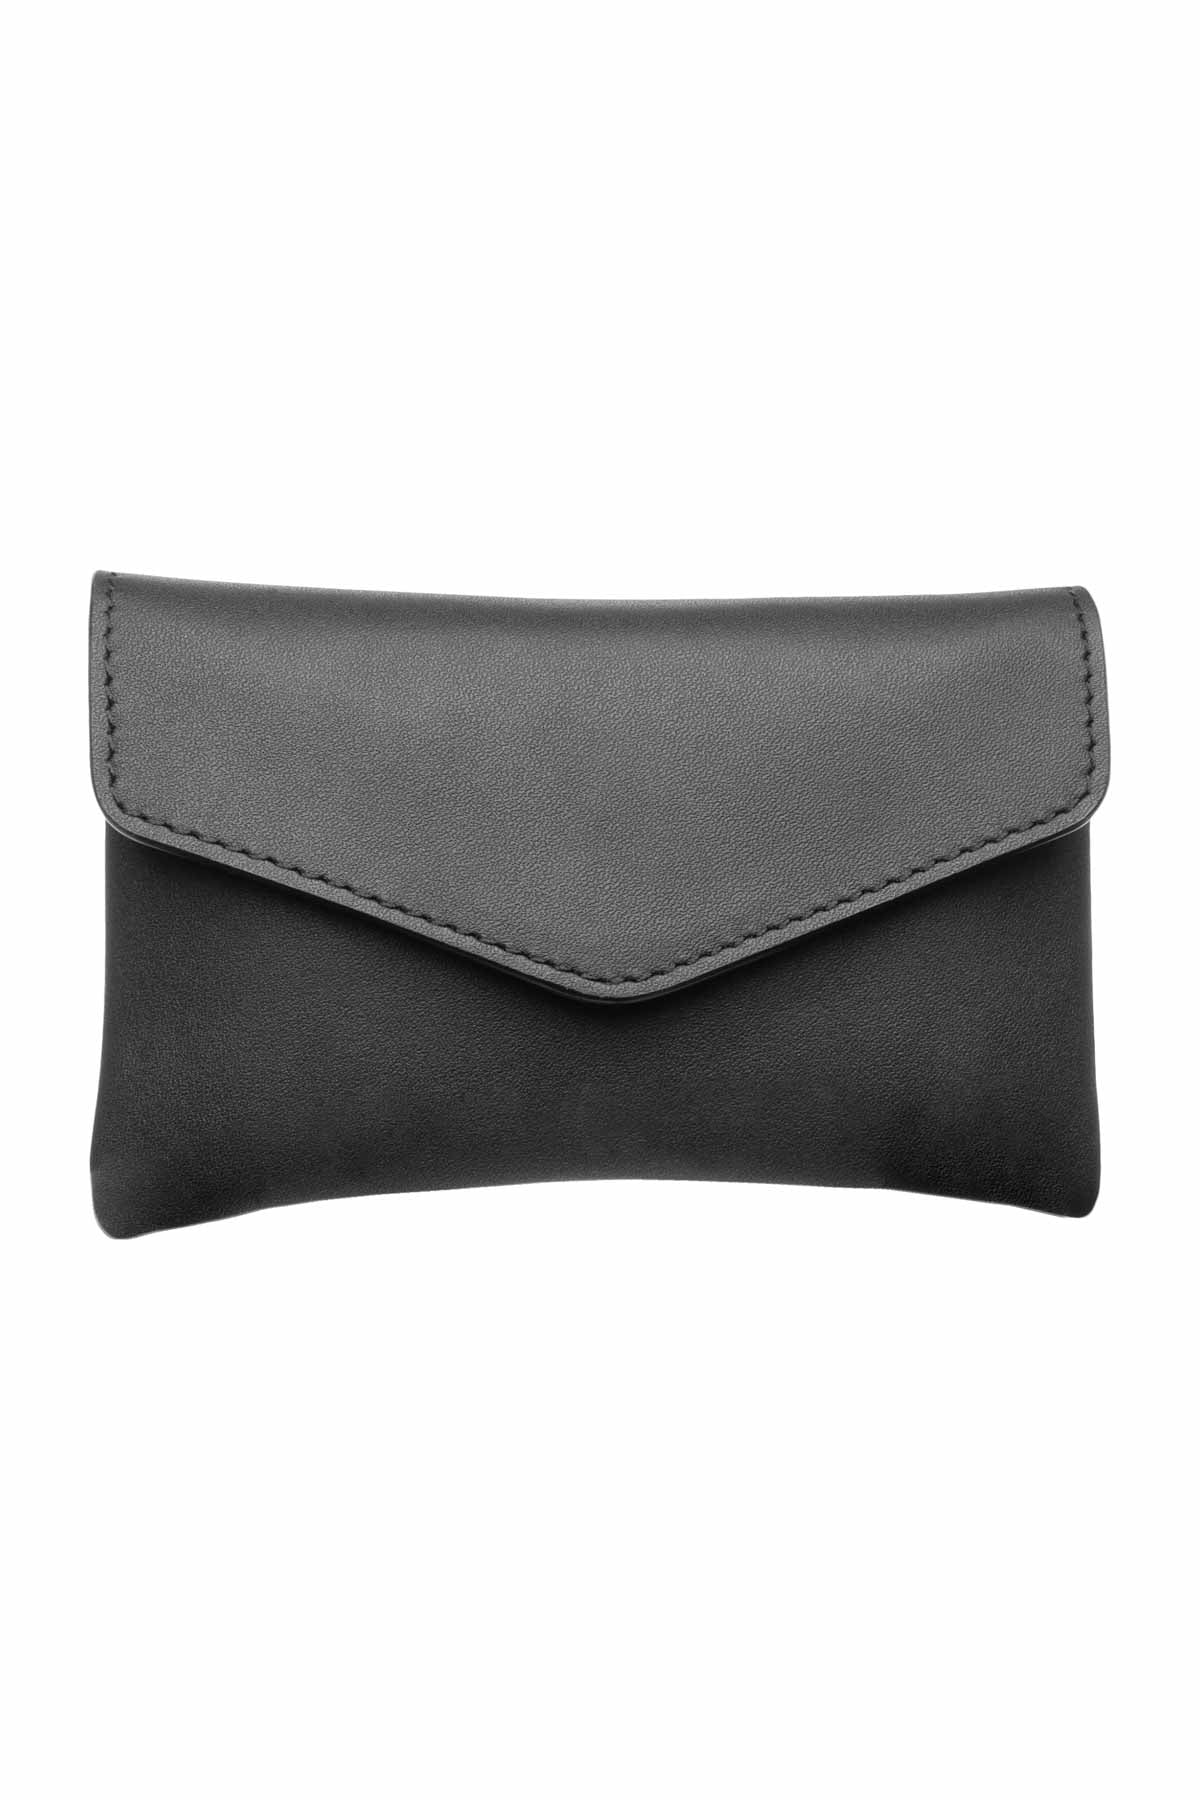 Leather Bridge Set - Black